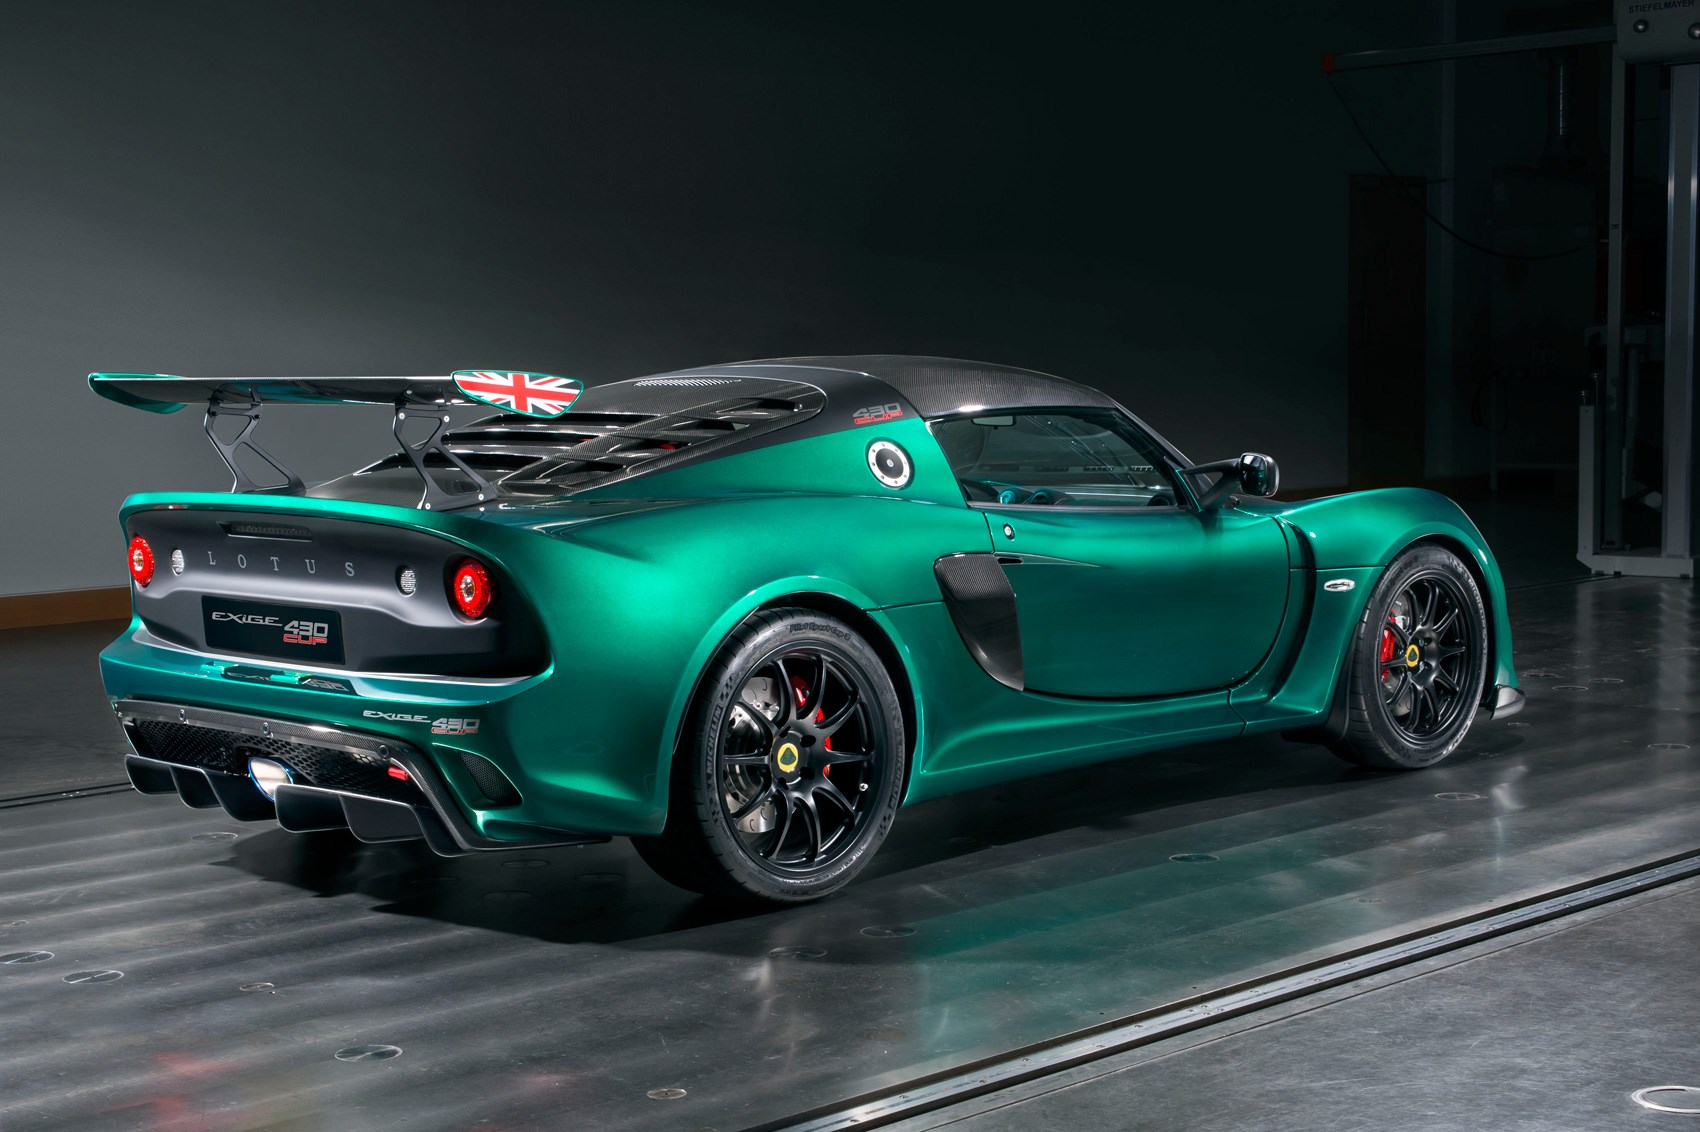 Lotus Exige Cup 430 Is The Fastest Lotus Road Car Ever